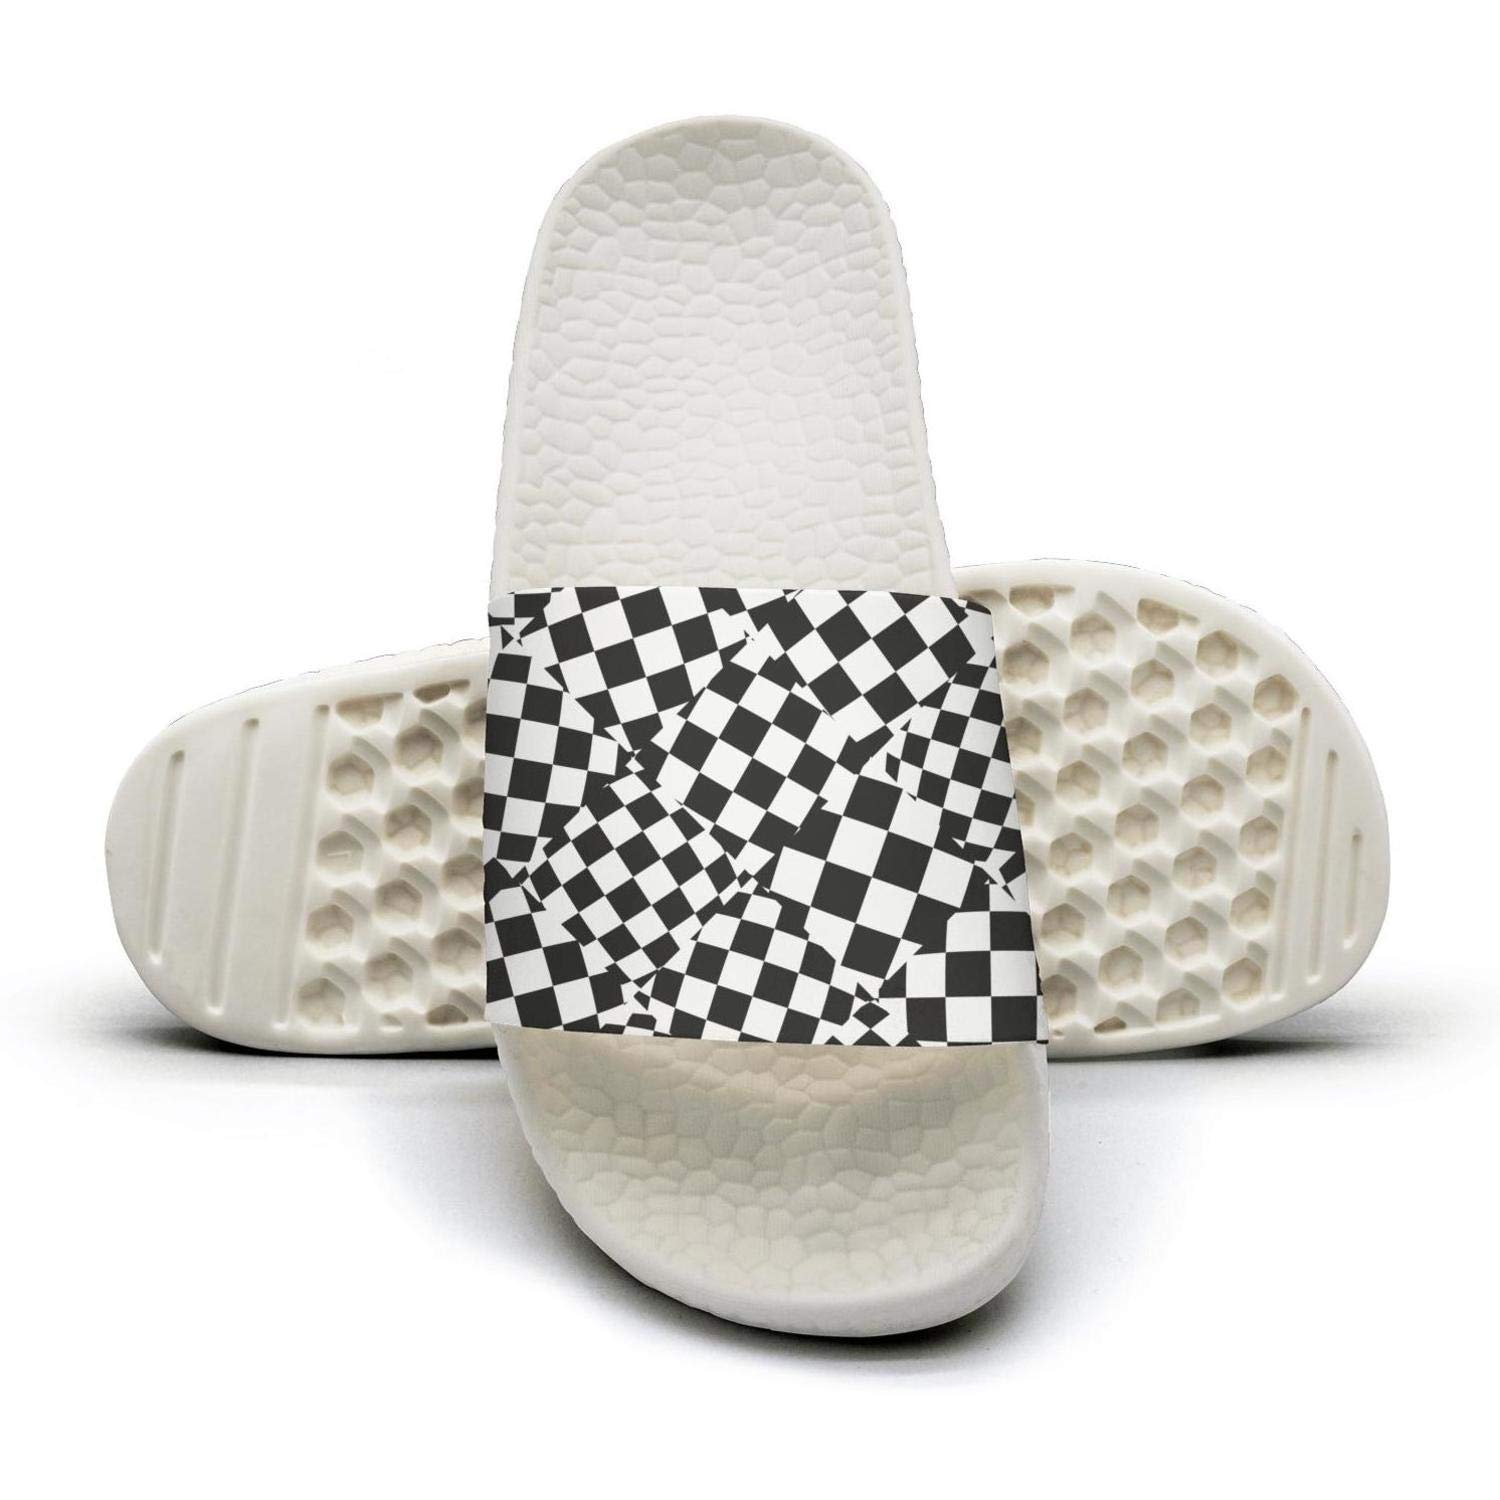 TAKLOOL Checkerboard Random Checkered Texture wear-Resistant Comfort Womens Slides Sandal